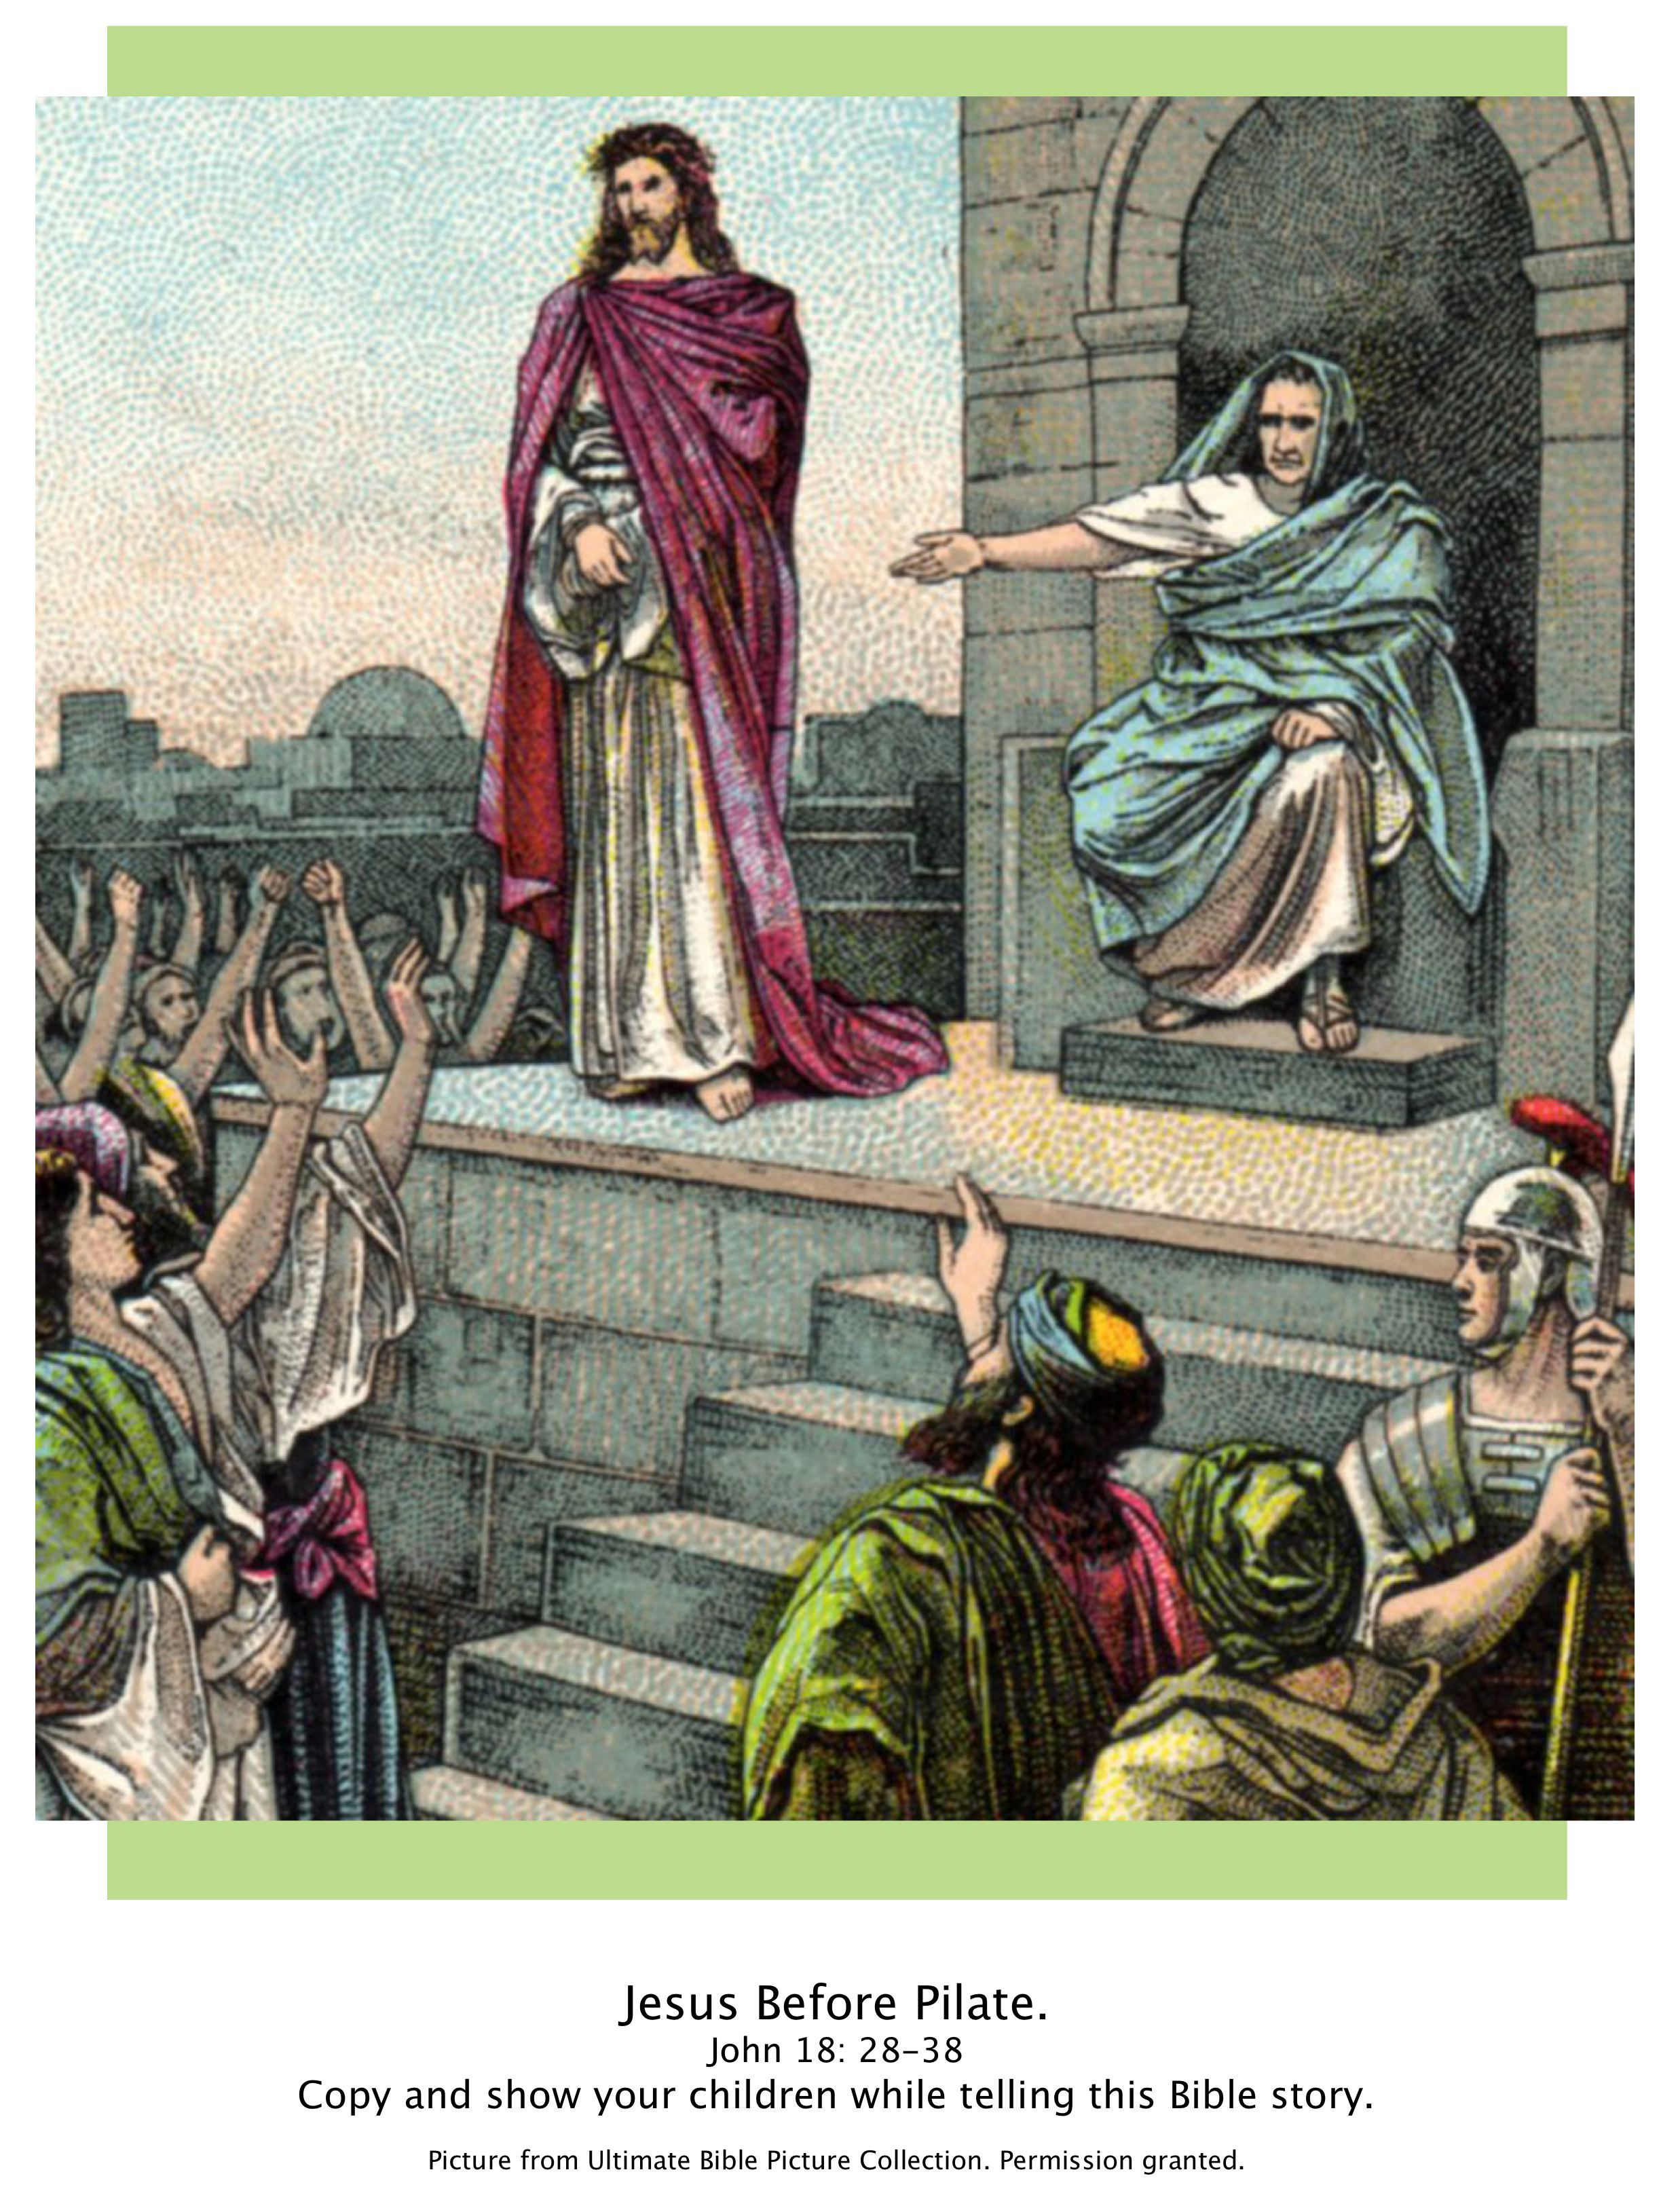 bible story picture of jesus before pilate john 18 28 38 show